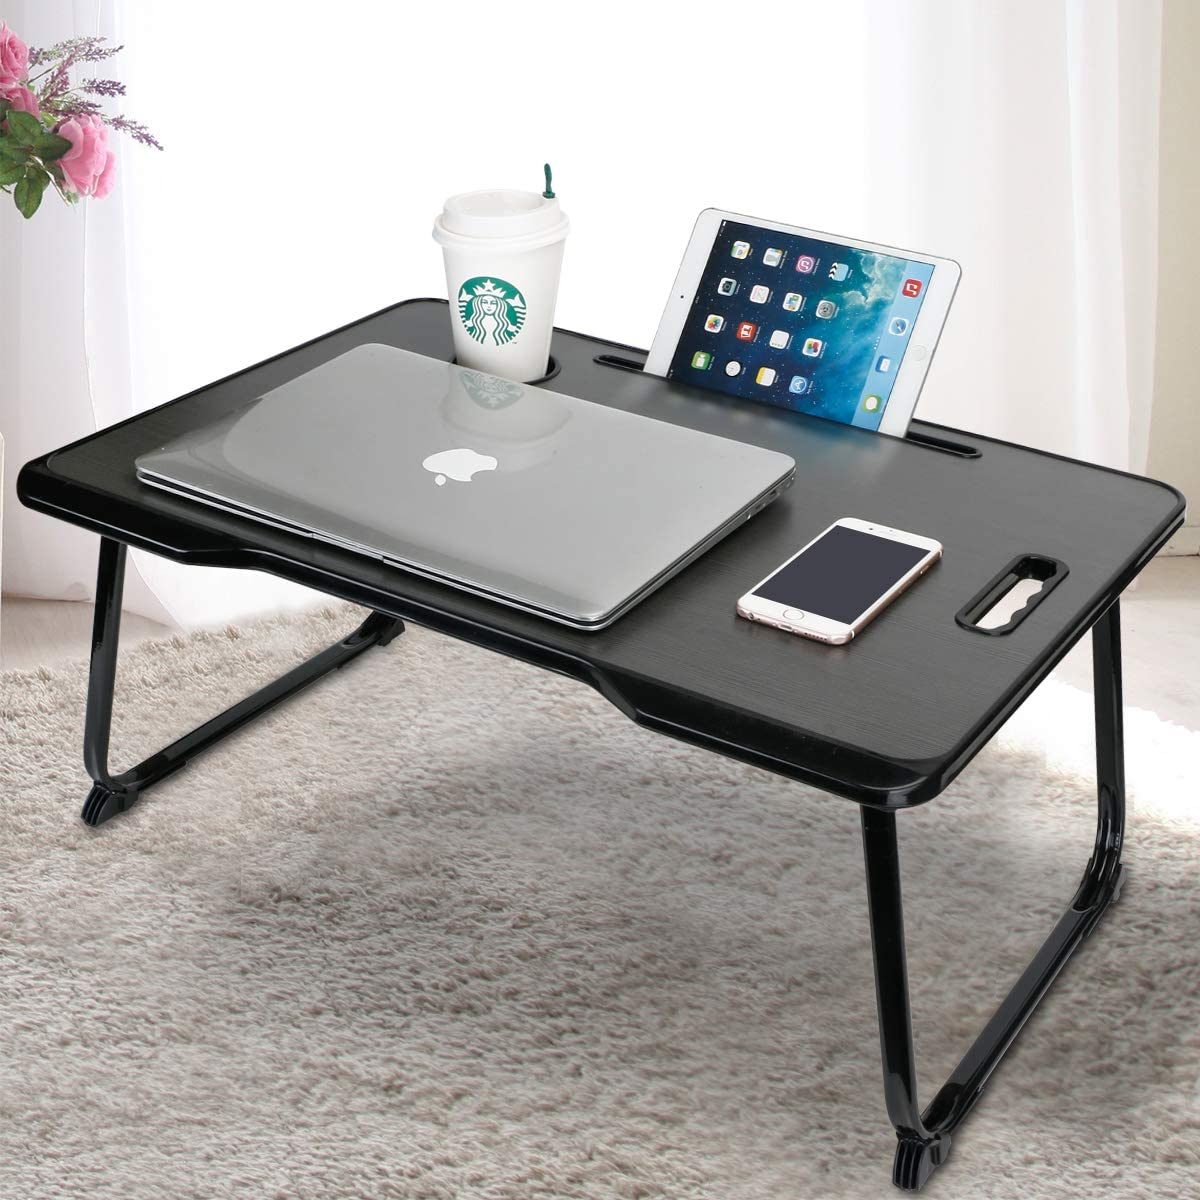 This image shows a laptop table for your bed with a MAC book, iphone, ipad and starbucks cup on top.